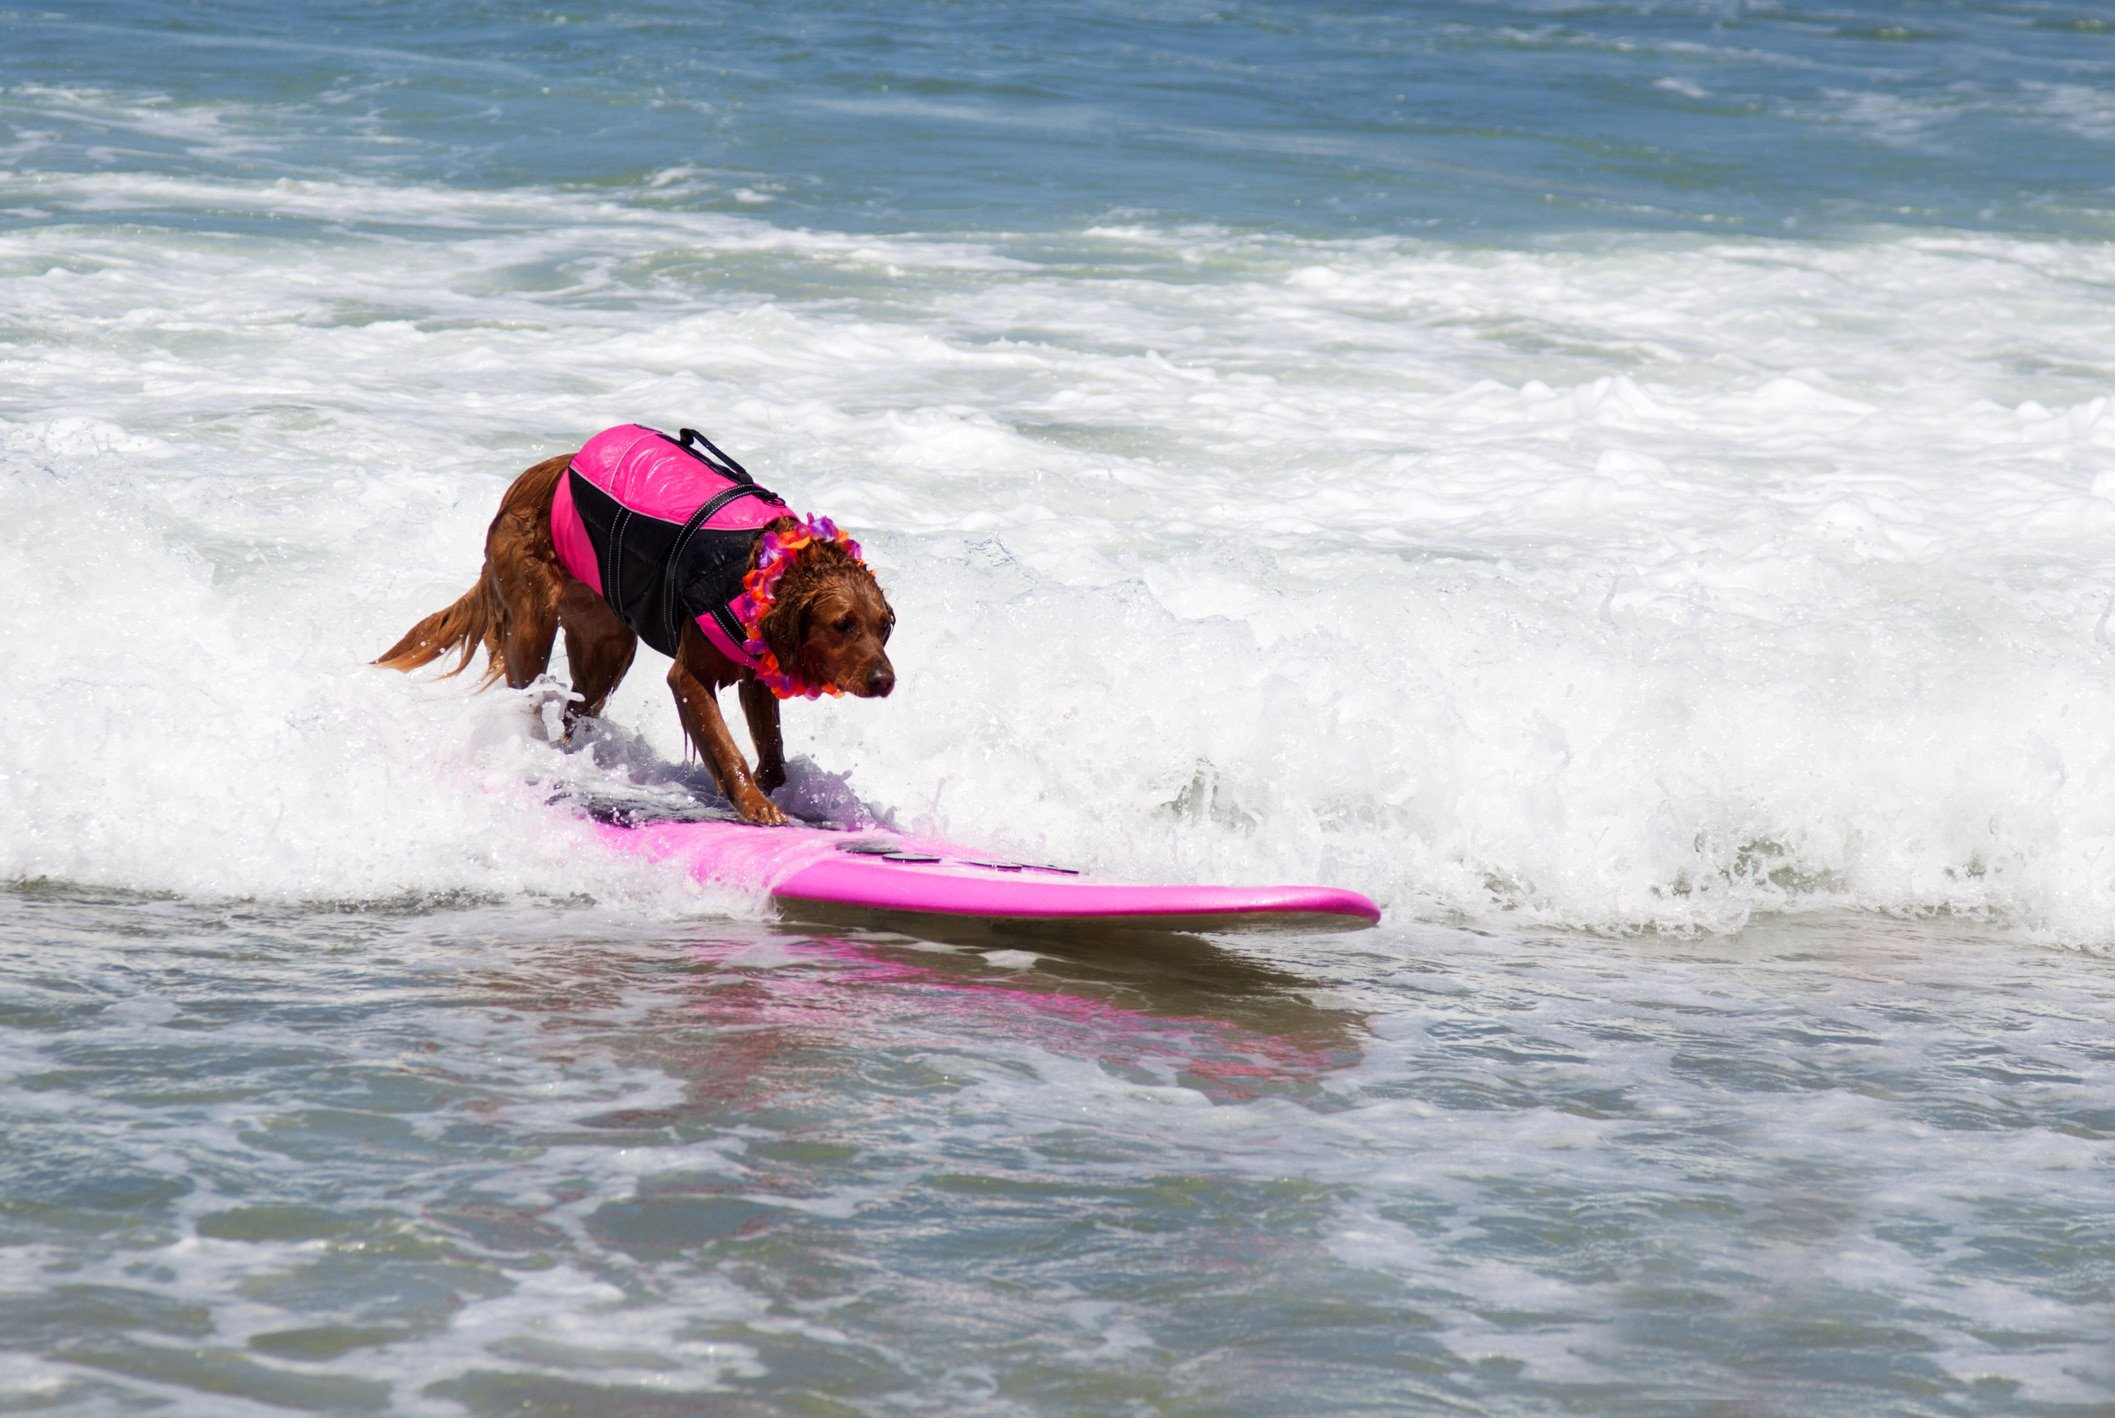 An Irish Setter wearing a pink life jackets surfs on a pink board.